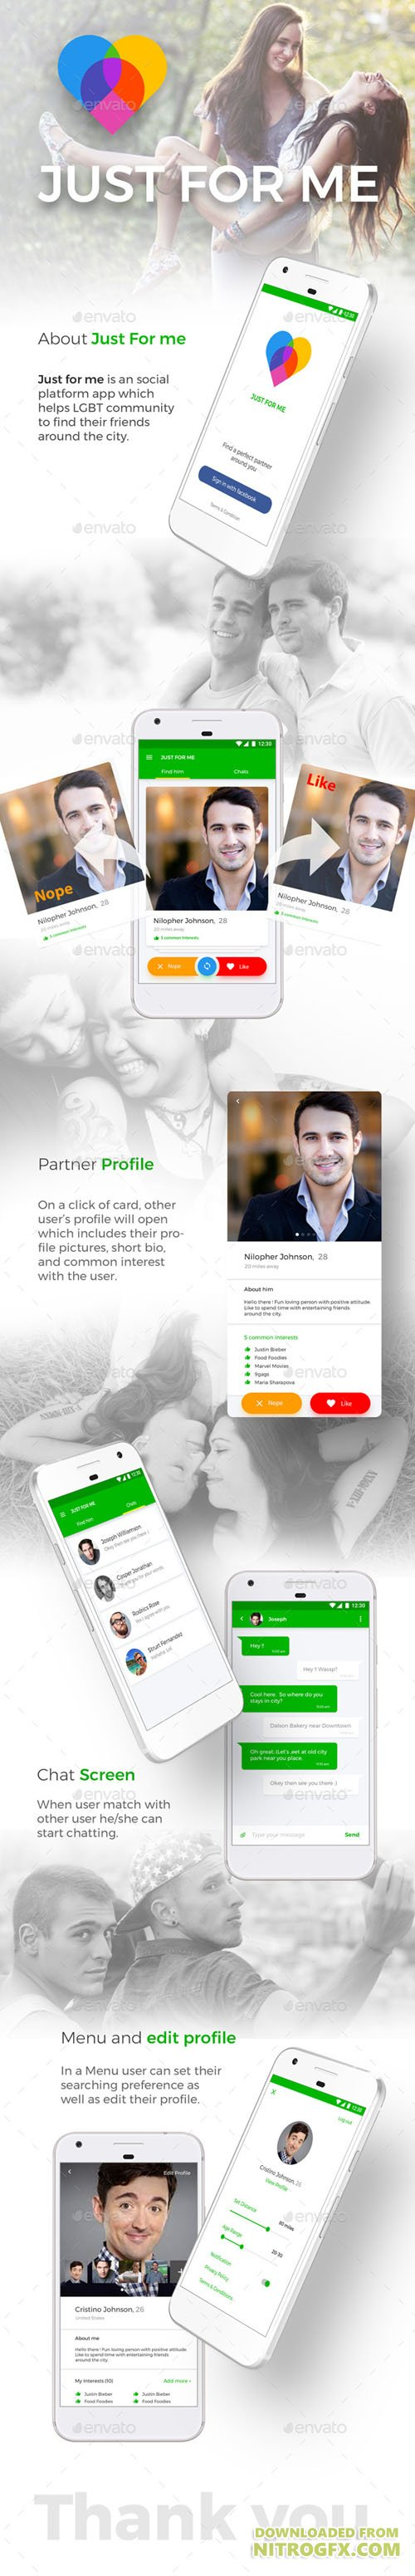 Dating App UI Kit like Tinder | Just For Me for Android + iOS 20712407